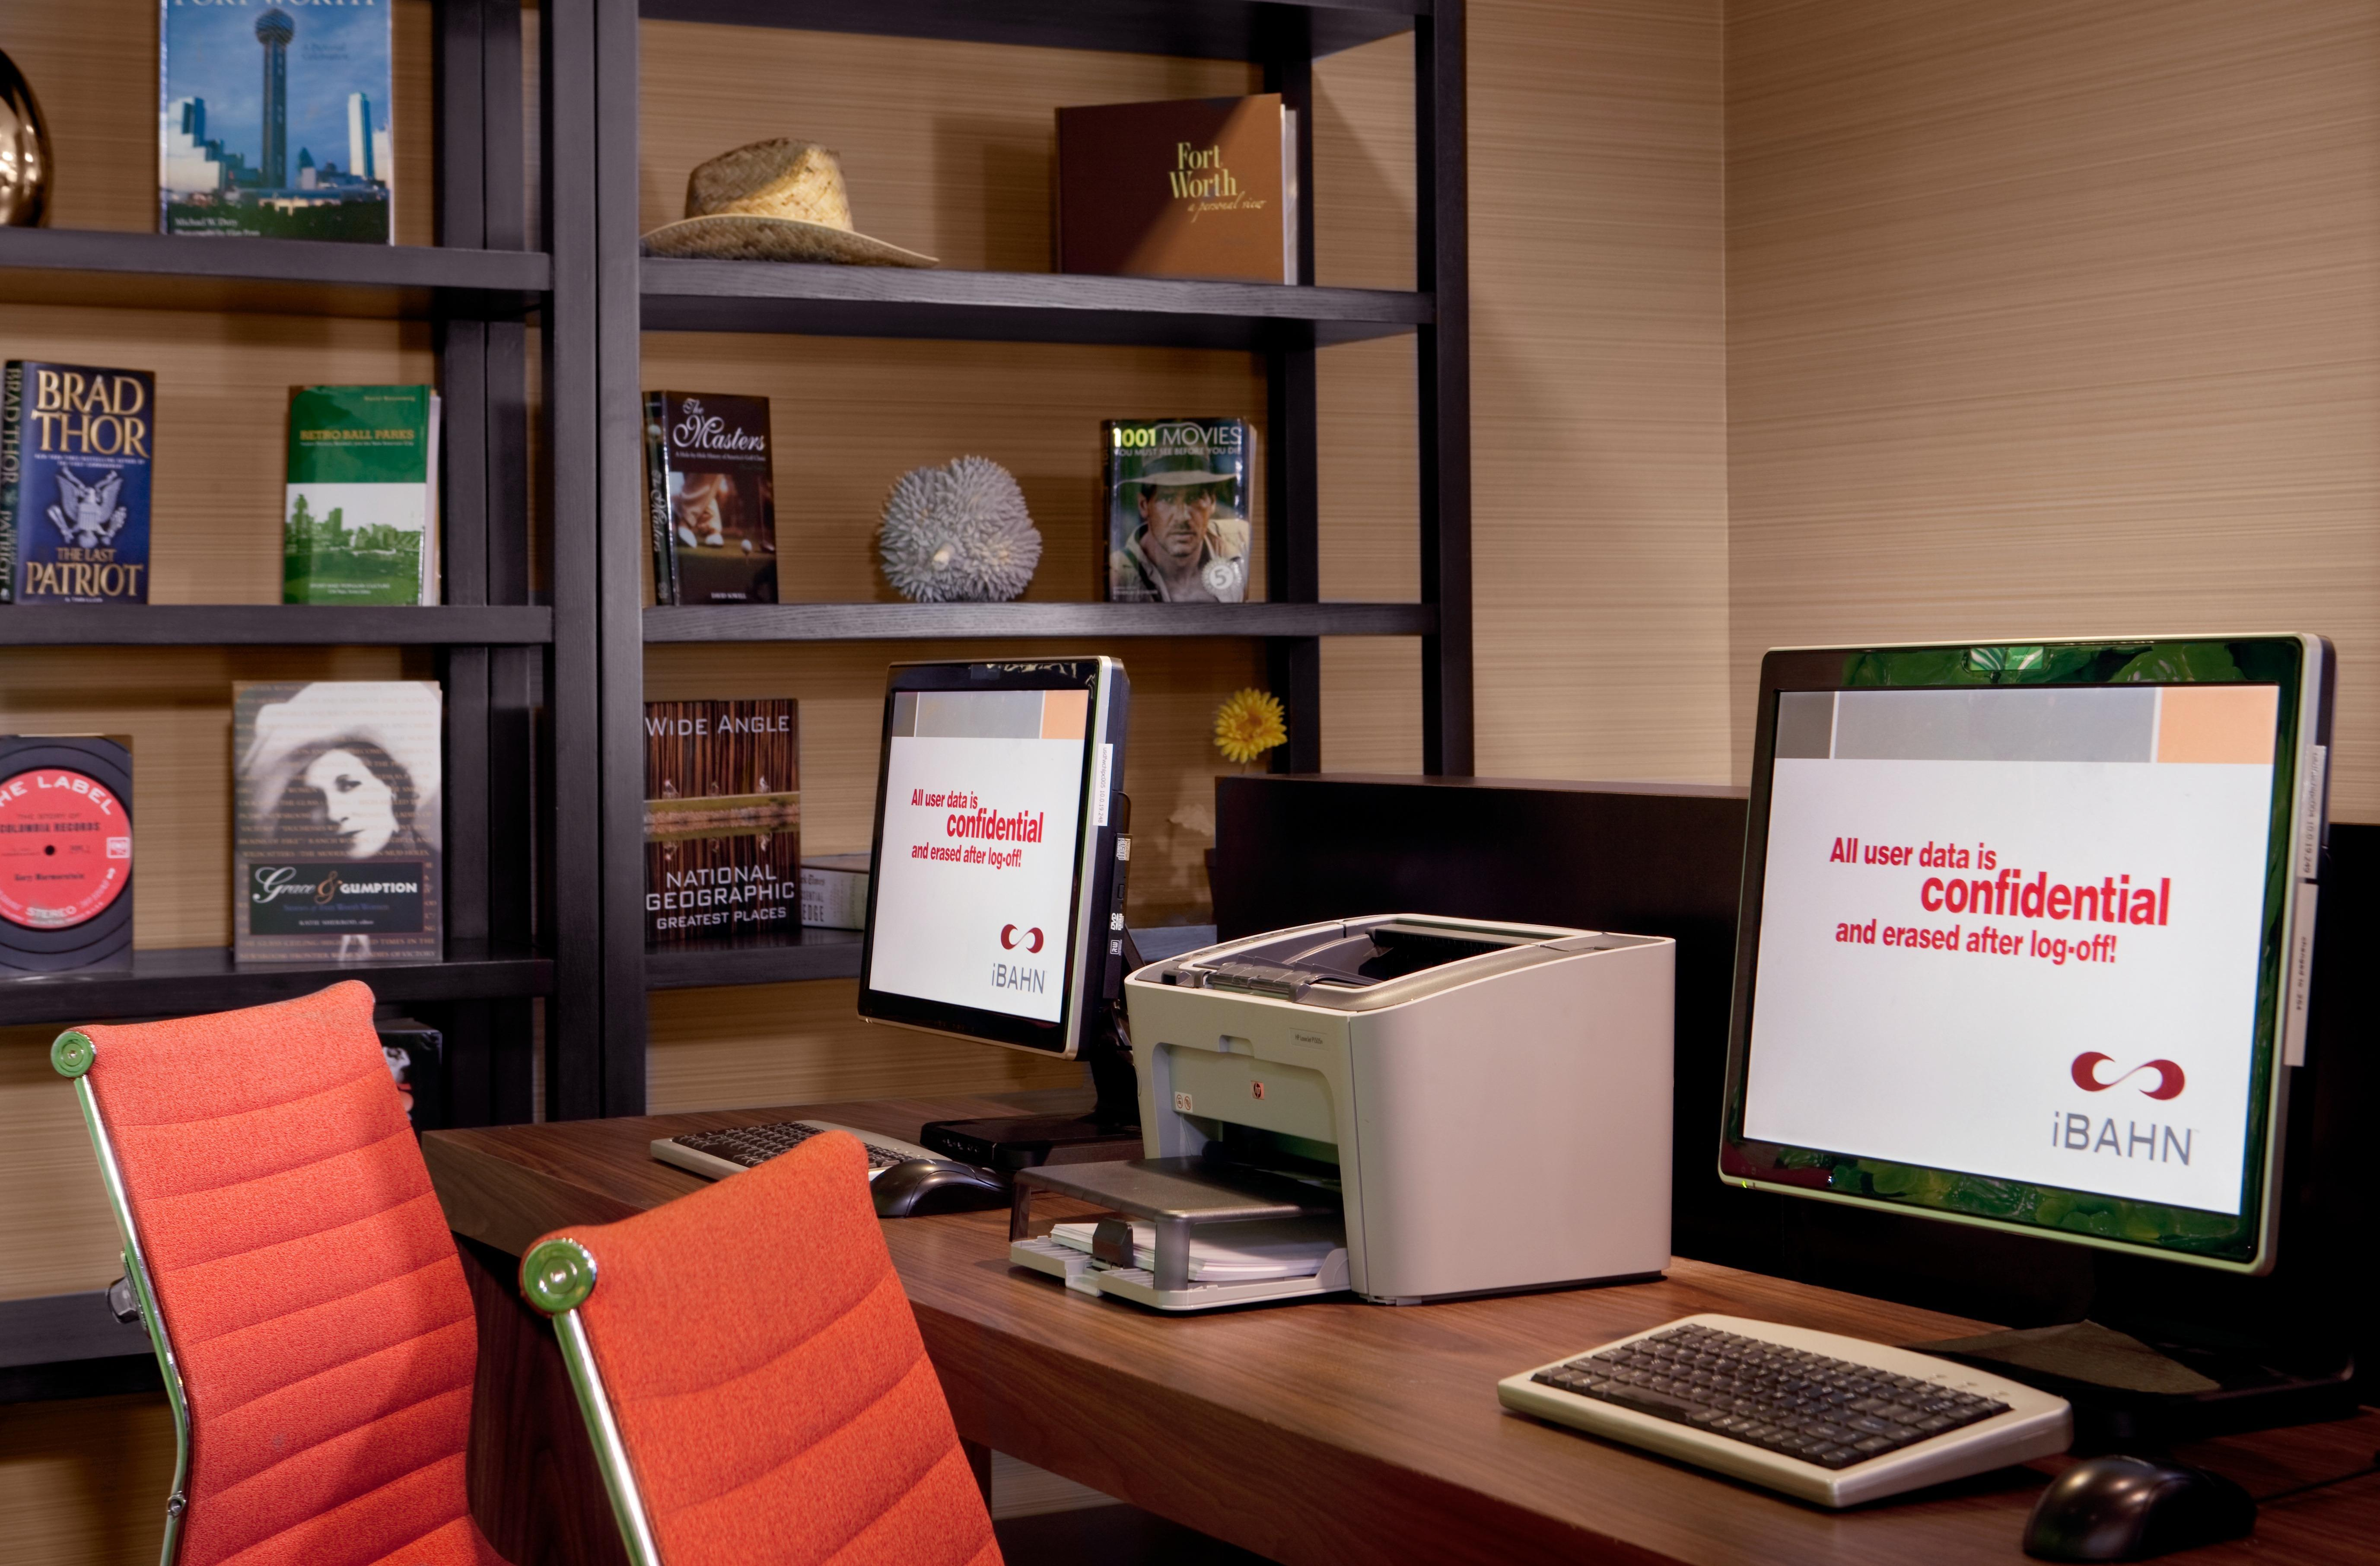 Courtyard by Marriott Fort Worth University Drive image 11